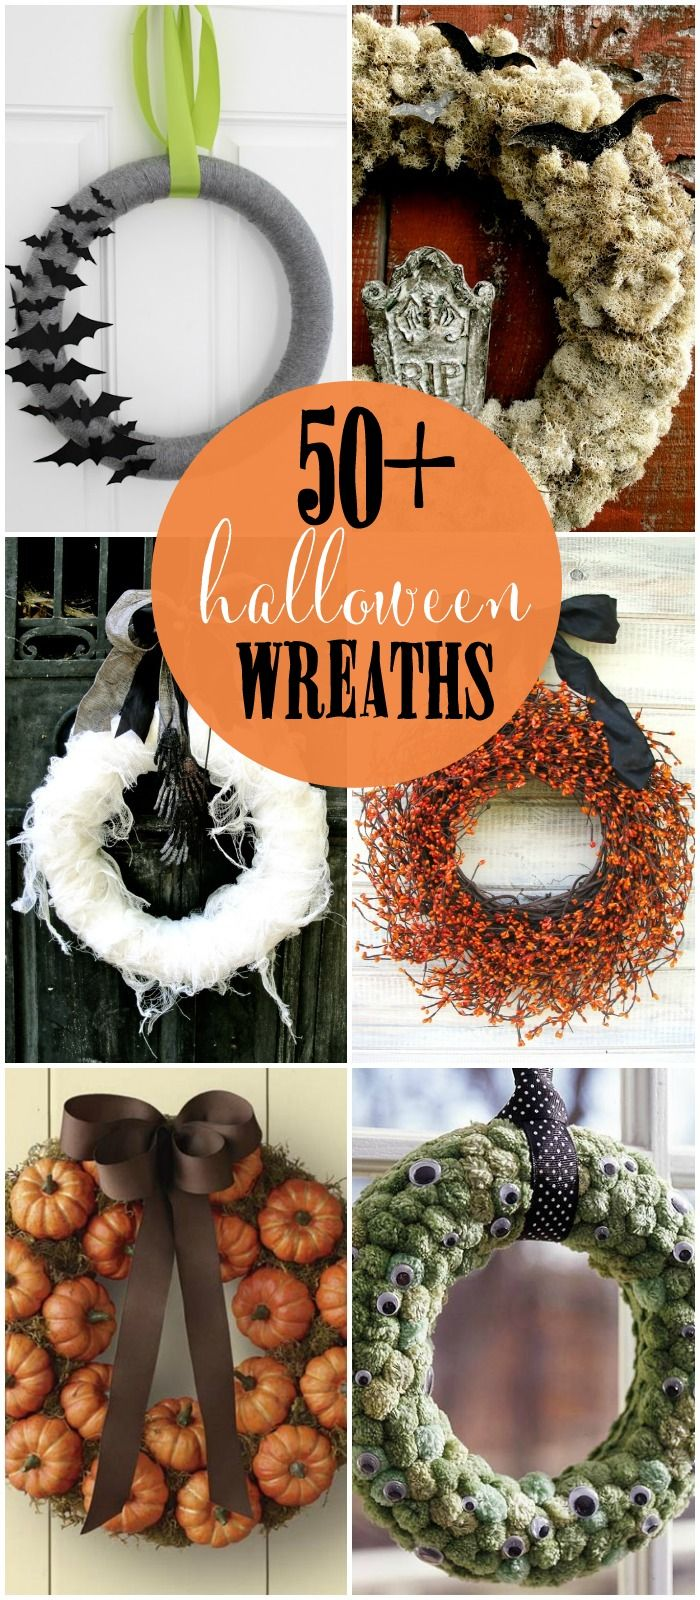 Halloween decorations ideas diy - 50 Diy Halloween Wreaths So Many Great Ideas Lilluna Com